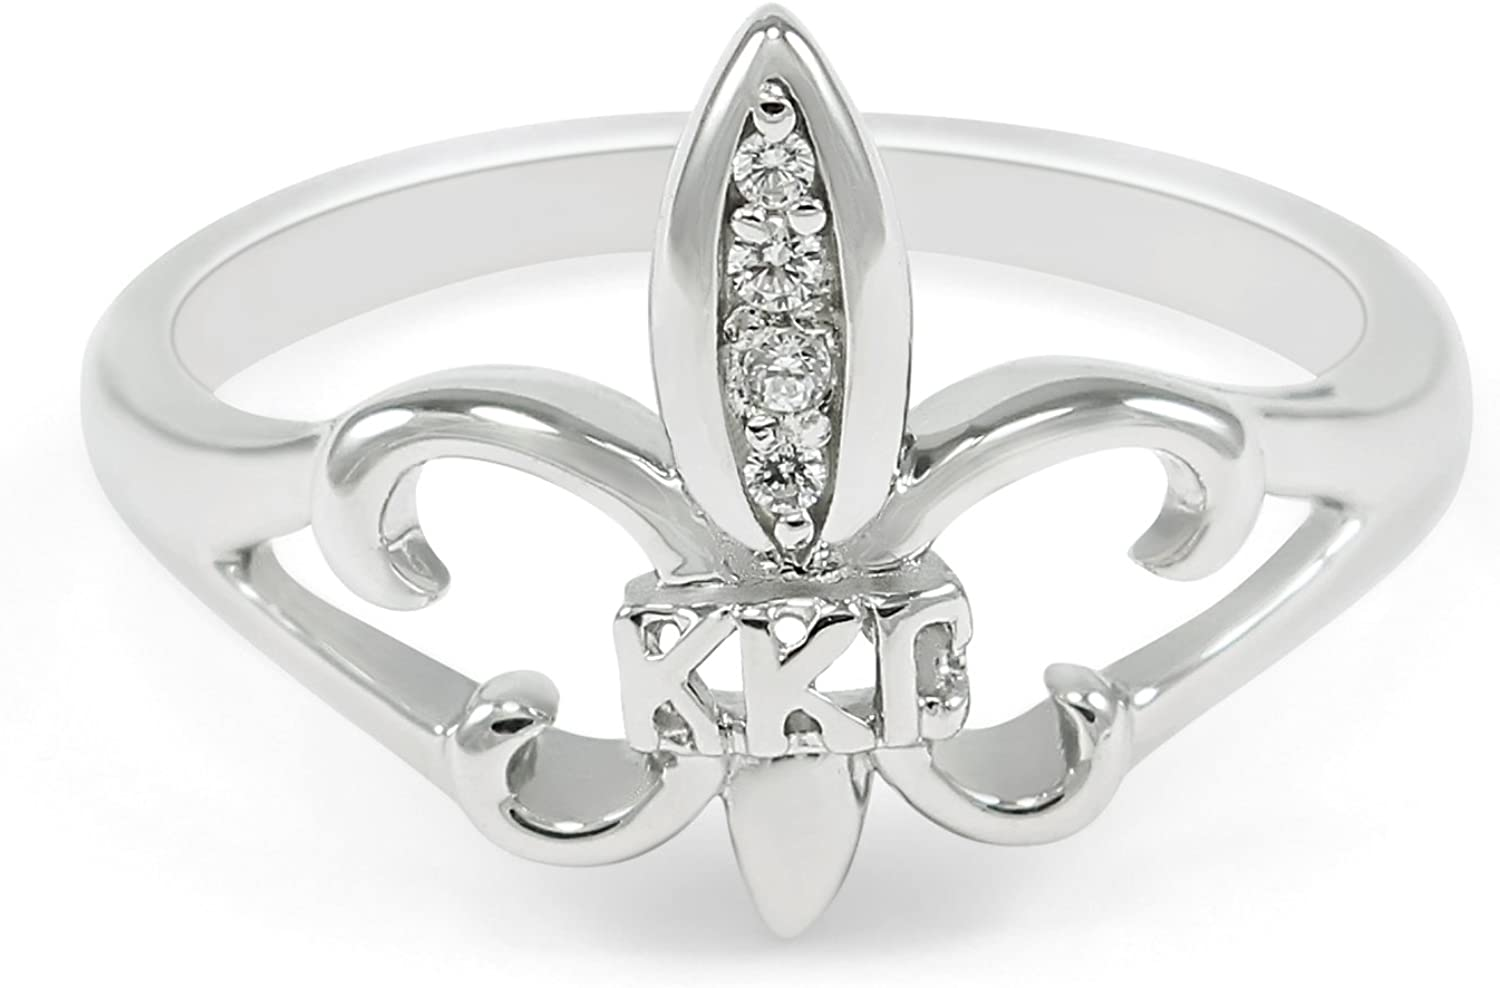 NEW!!*** Kappa Kappa Gamma sterling silver ring with cut-out letters